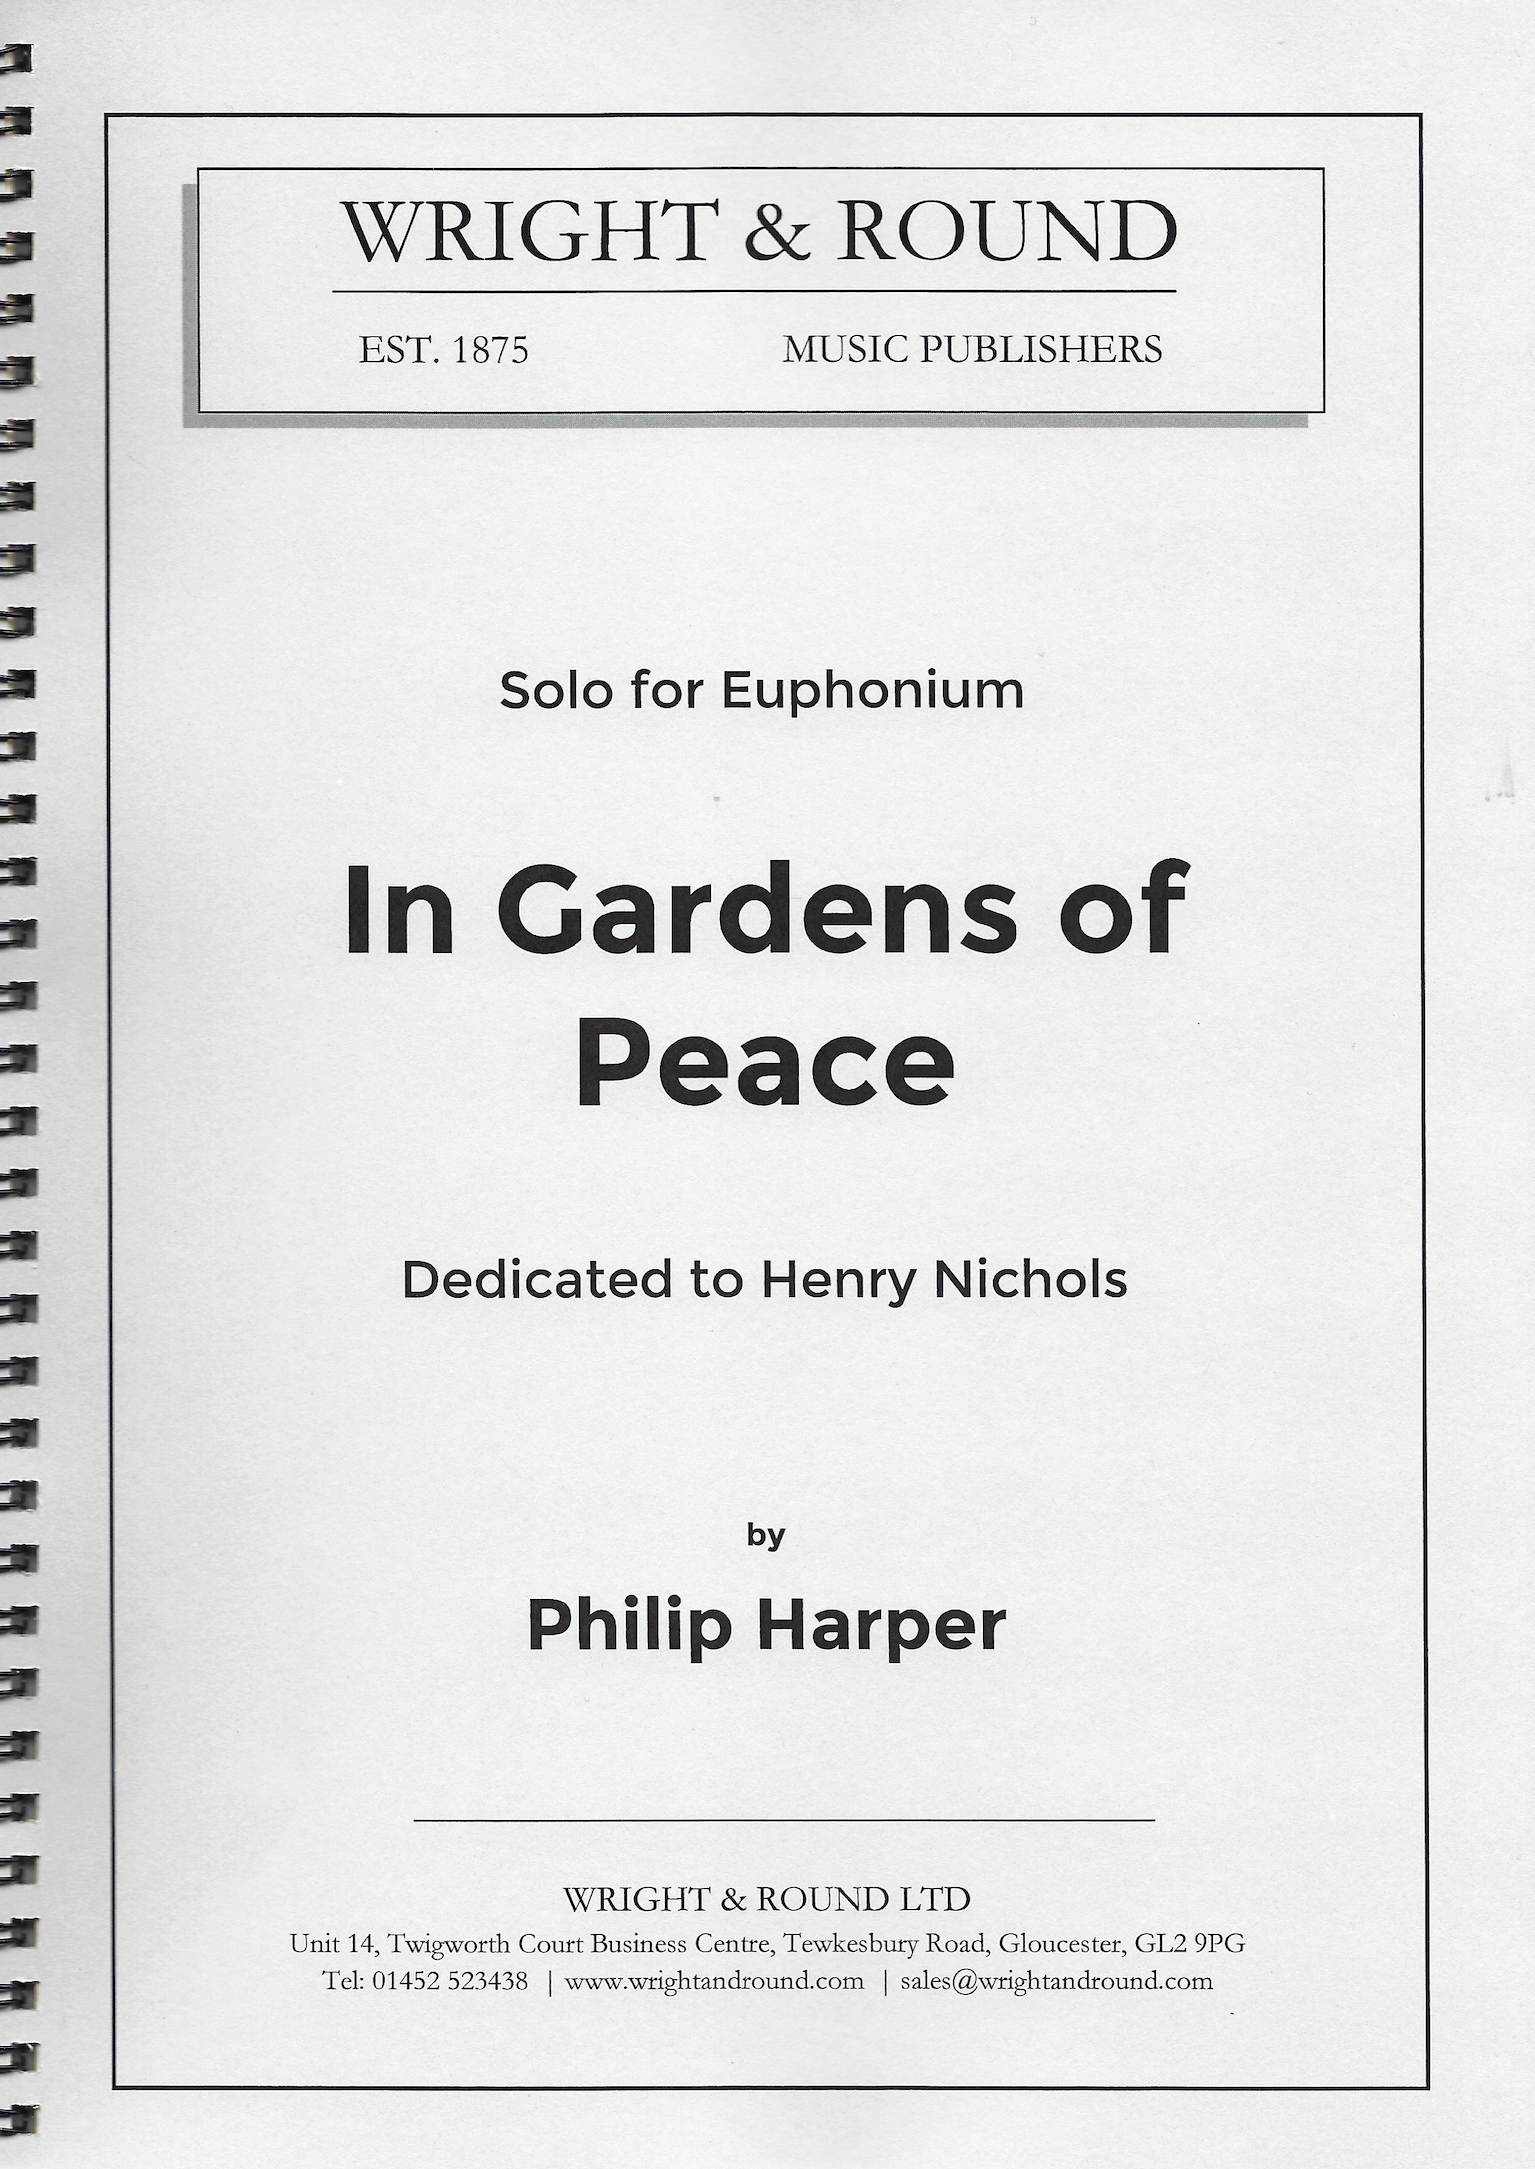 In Gardens of Peace - Philip Harper - Euphonium with Brass Band accompaniment